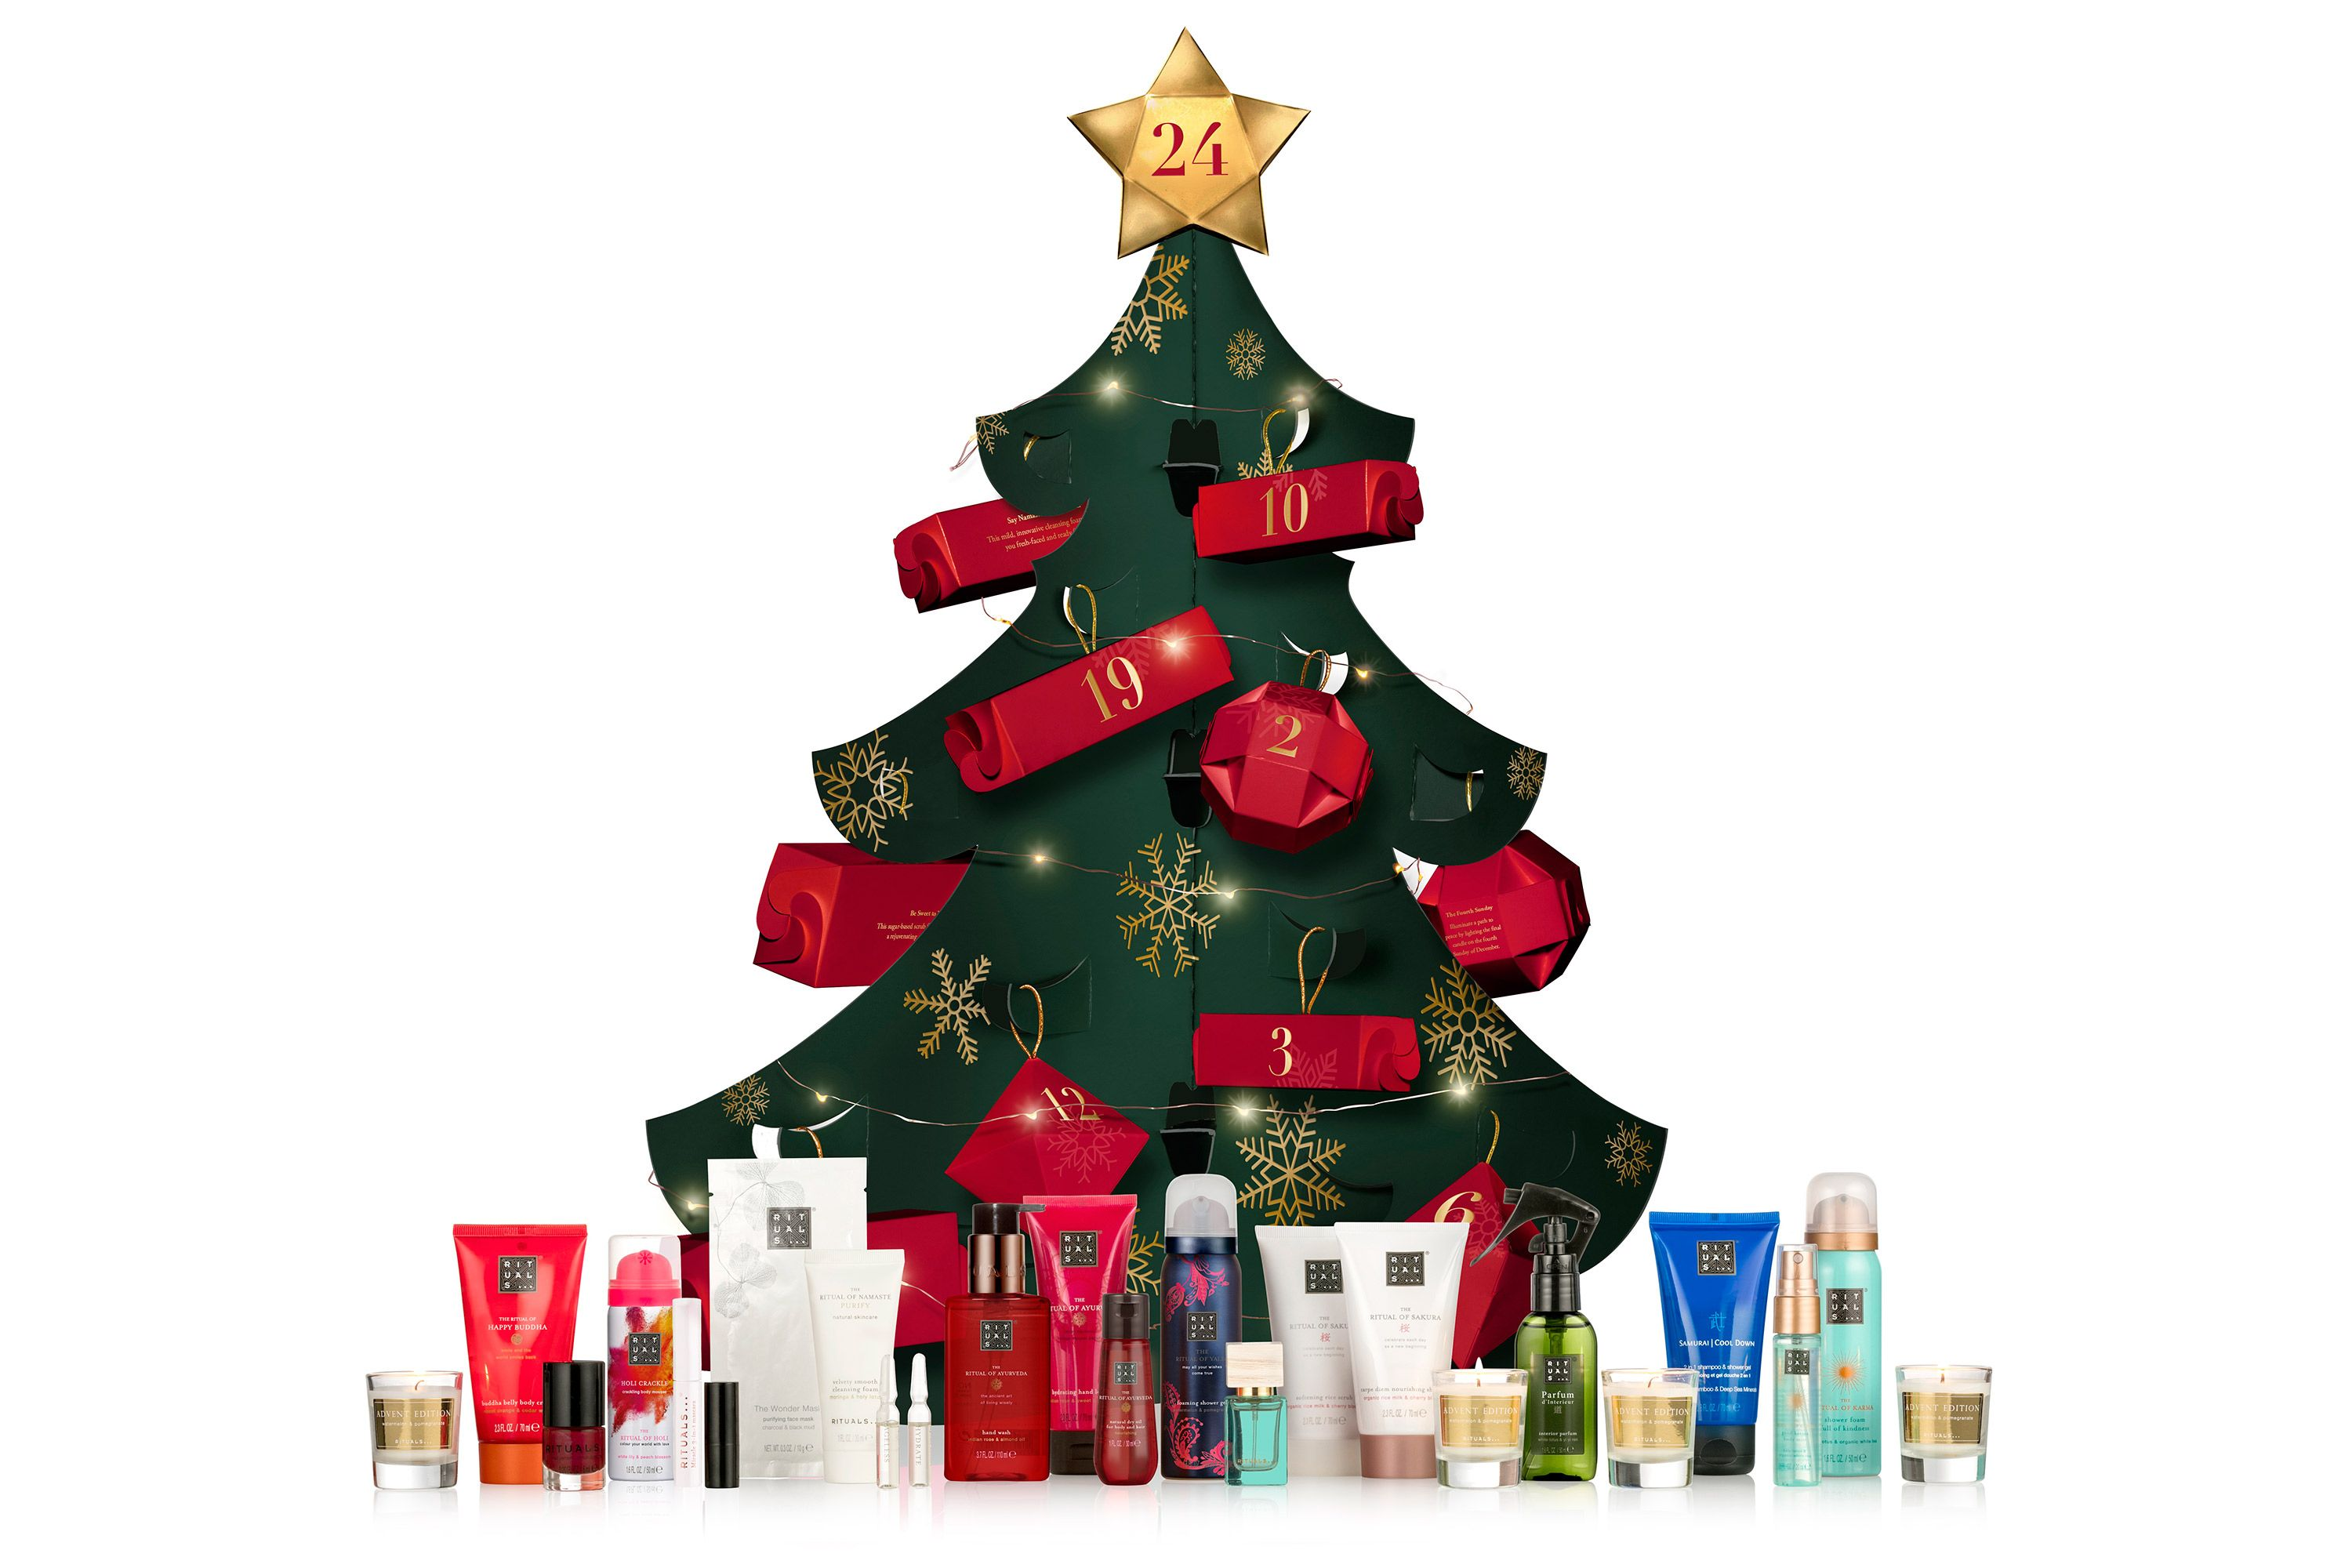 Gifts ideas for mom christmas 2019 advent